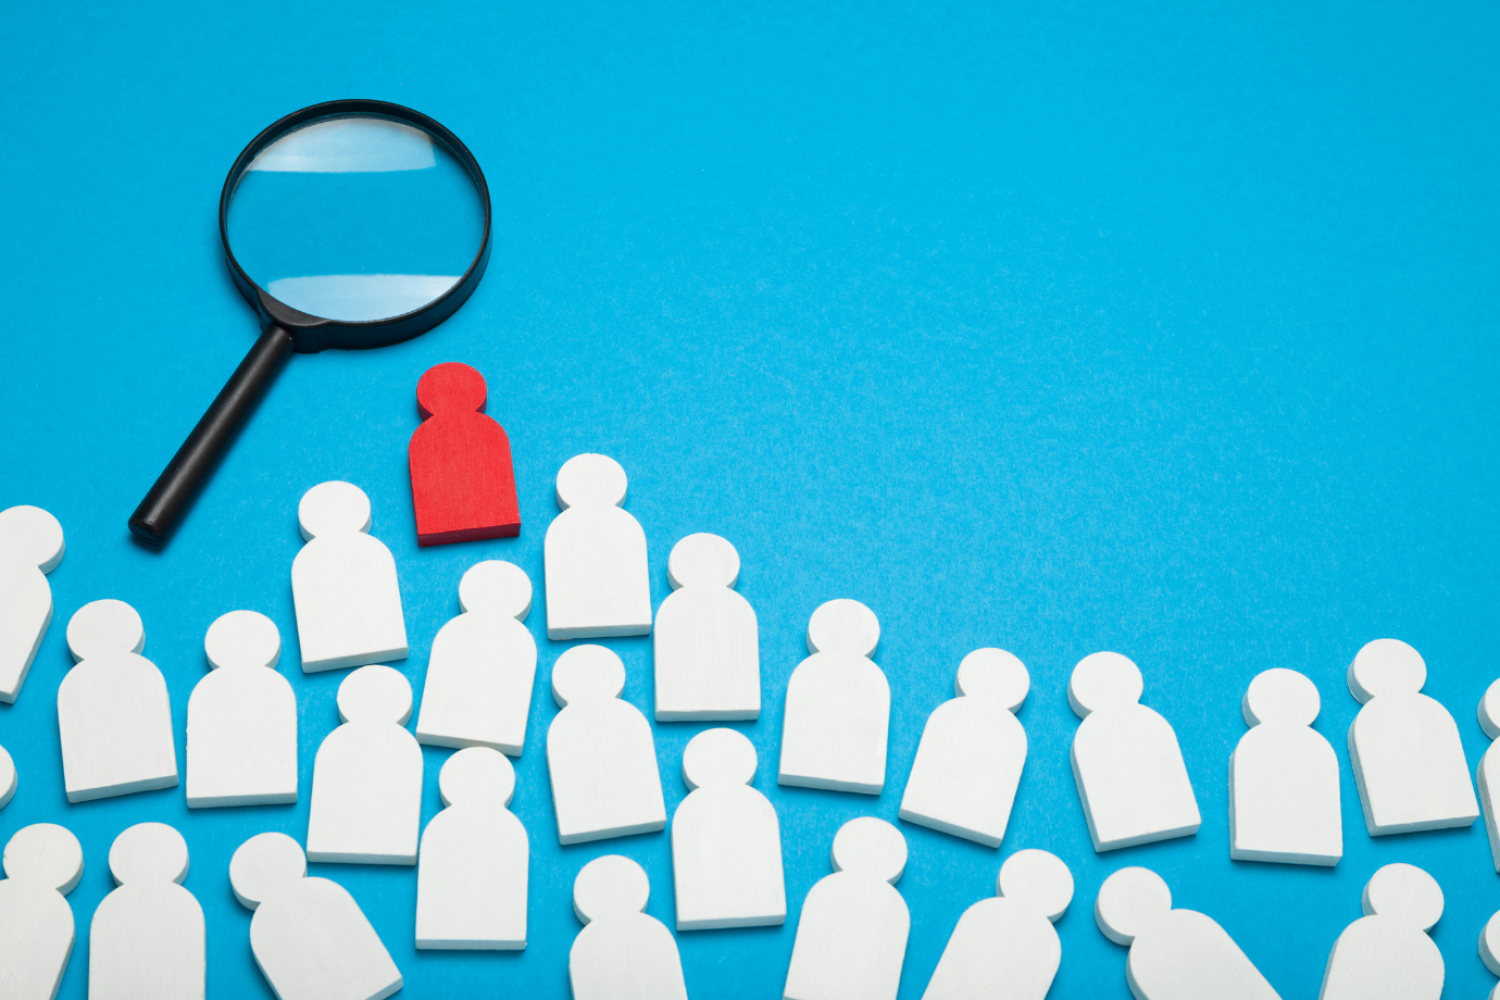 A magnifying glass hovers over a blue background with white icons of people. One of the icons is highlighted red to indicate the person was chosen.